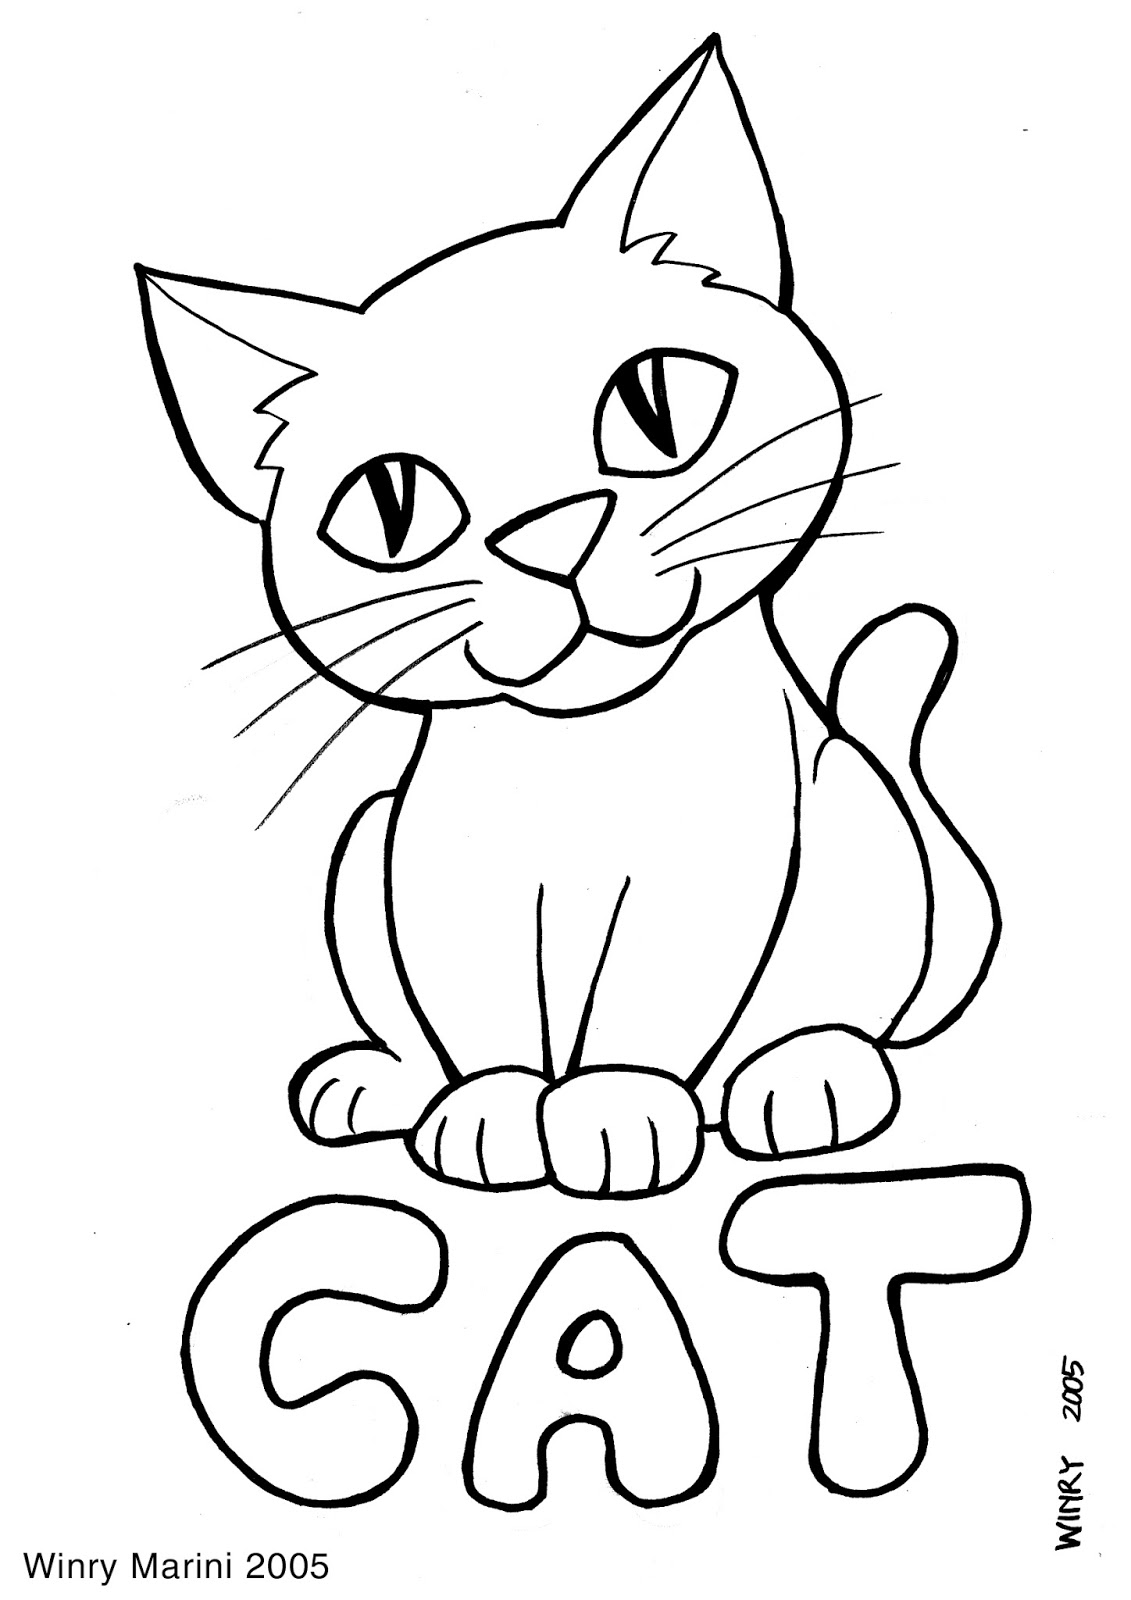 Art and Lore: Cat Coloring Page (Mewarnai Kucing)